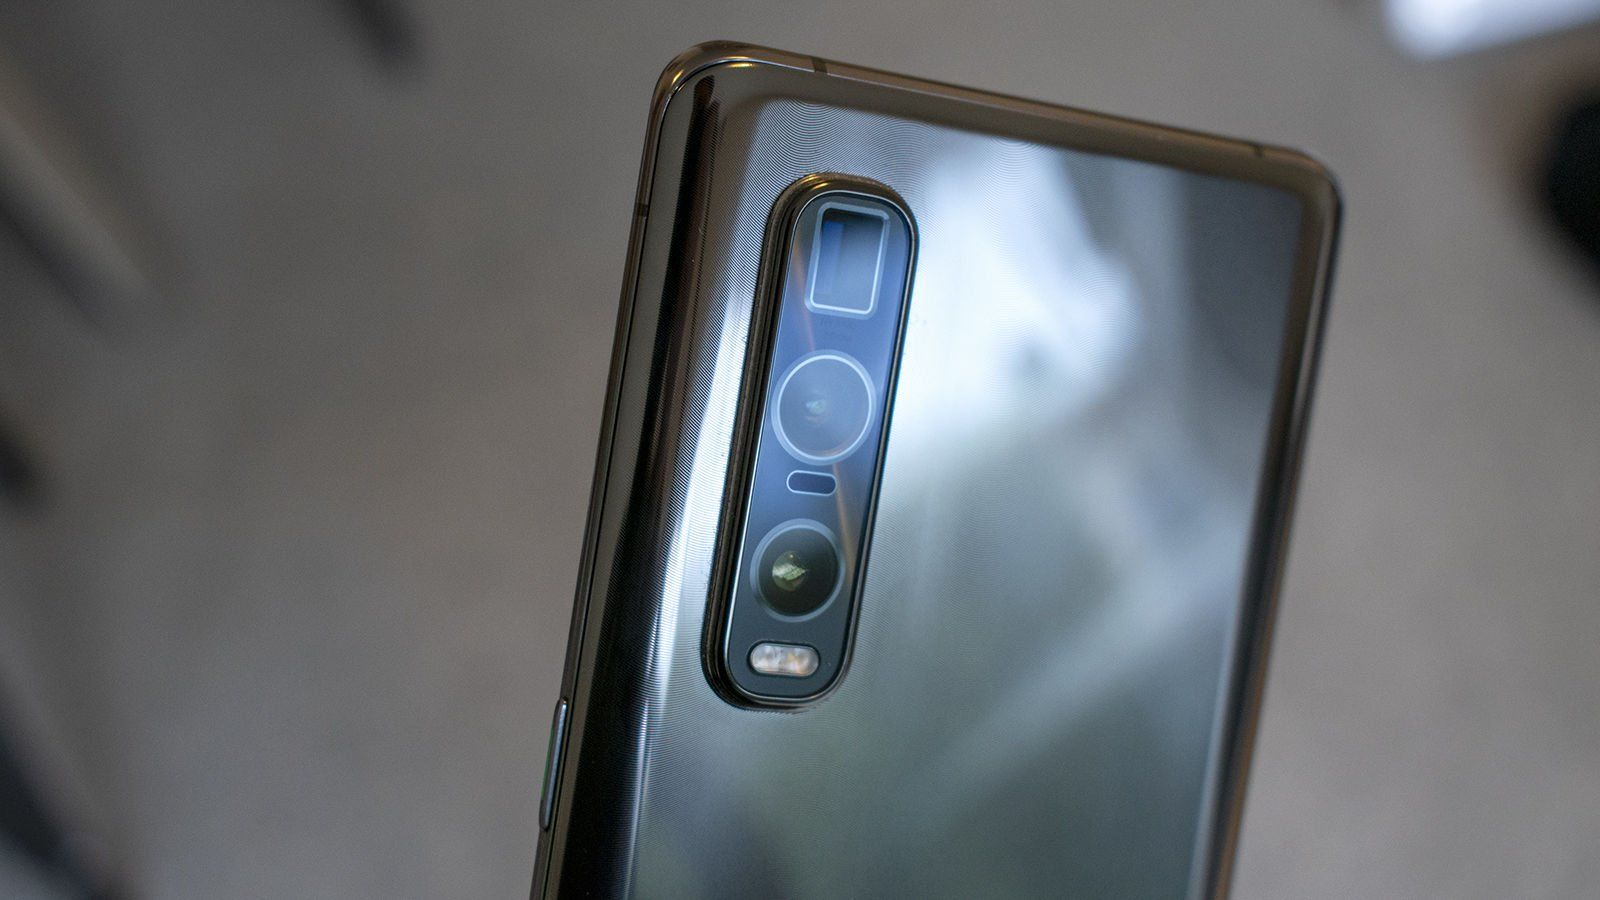 https://www.pcworld.es/cmsdata/features/3792401/oppo_find_x2_pro_android.jpg